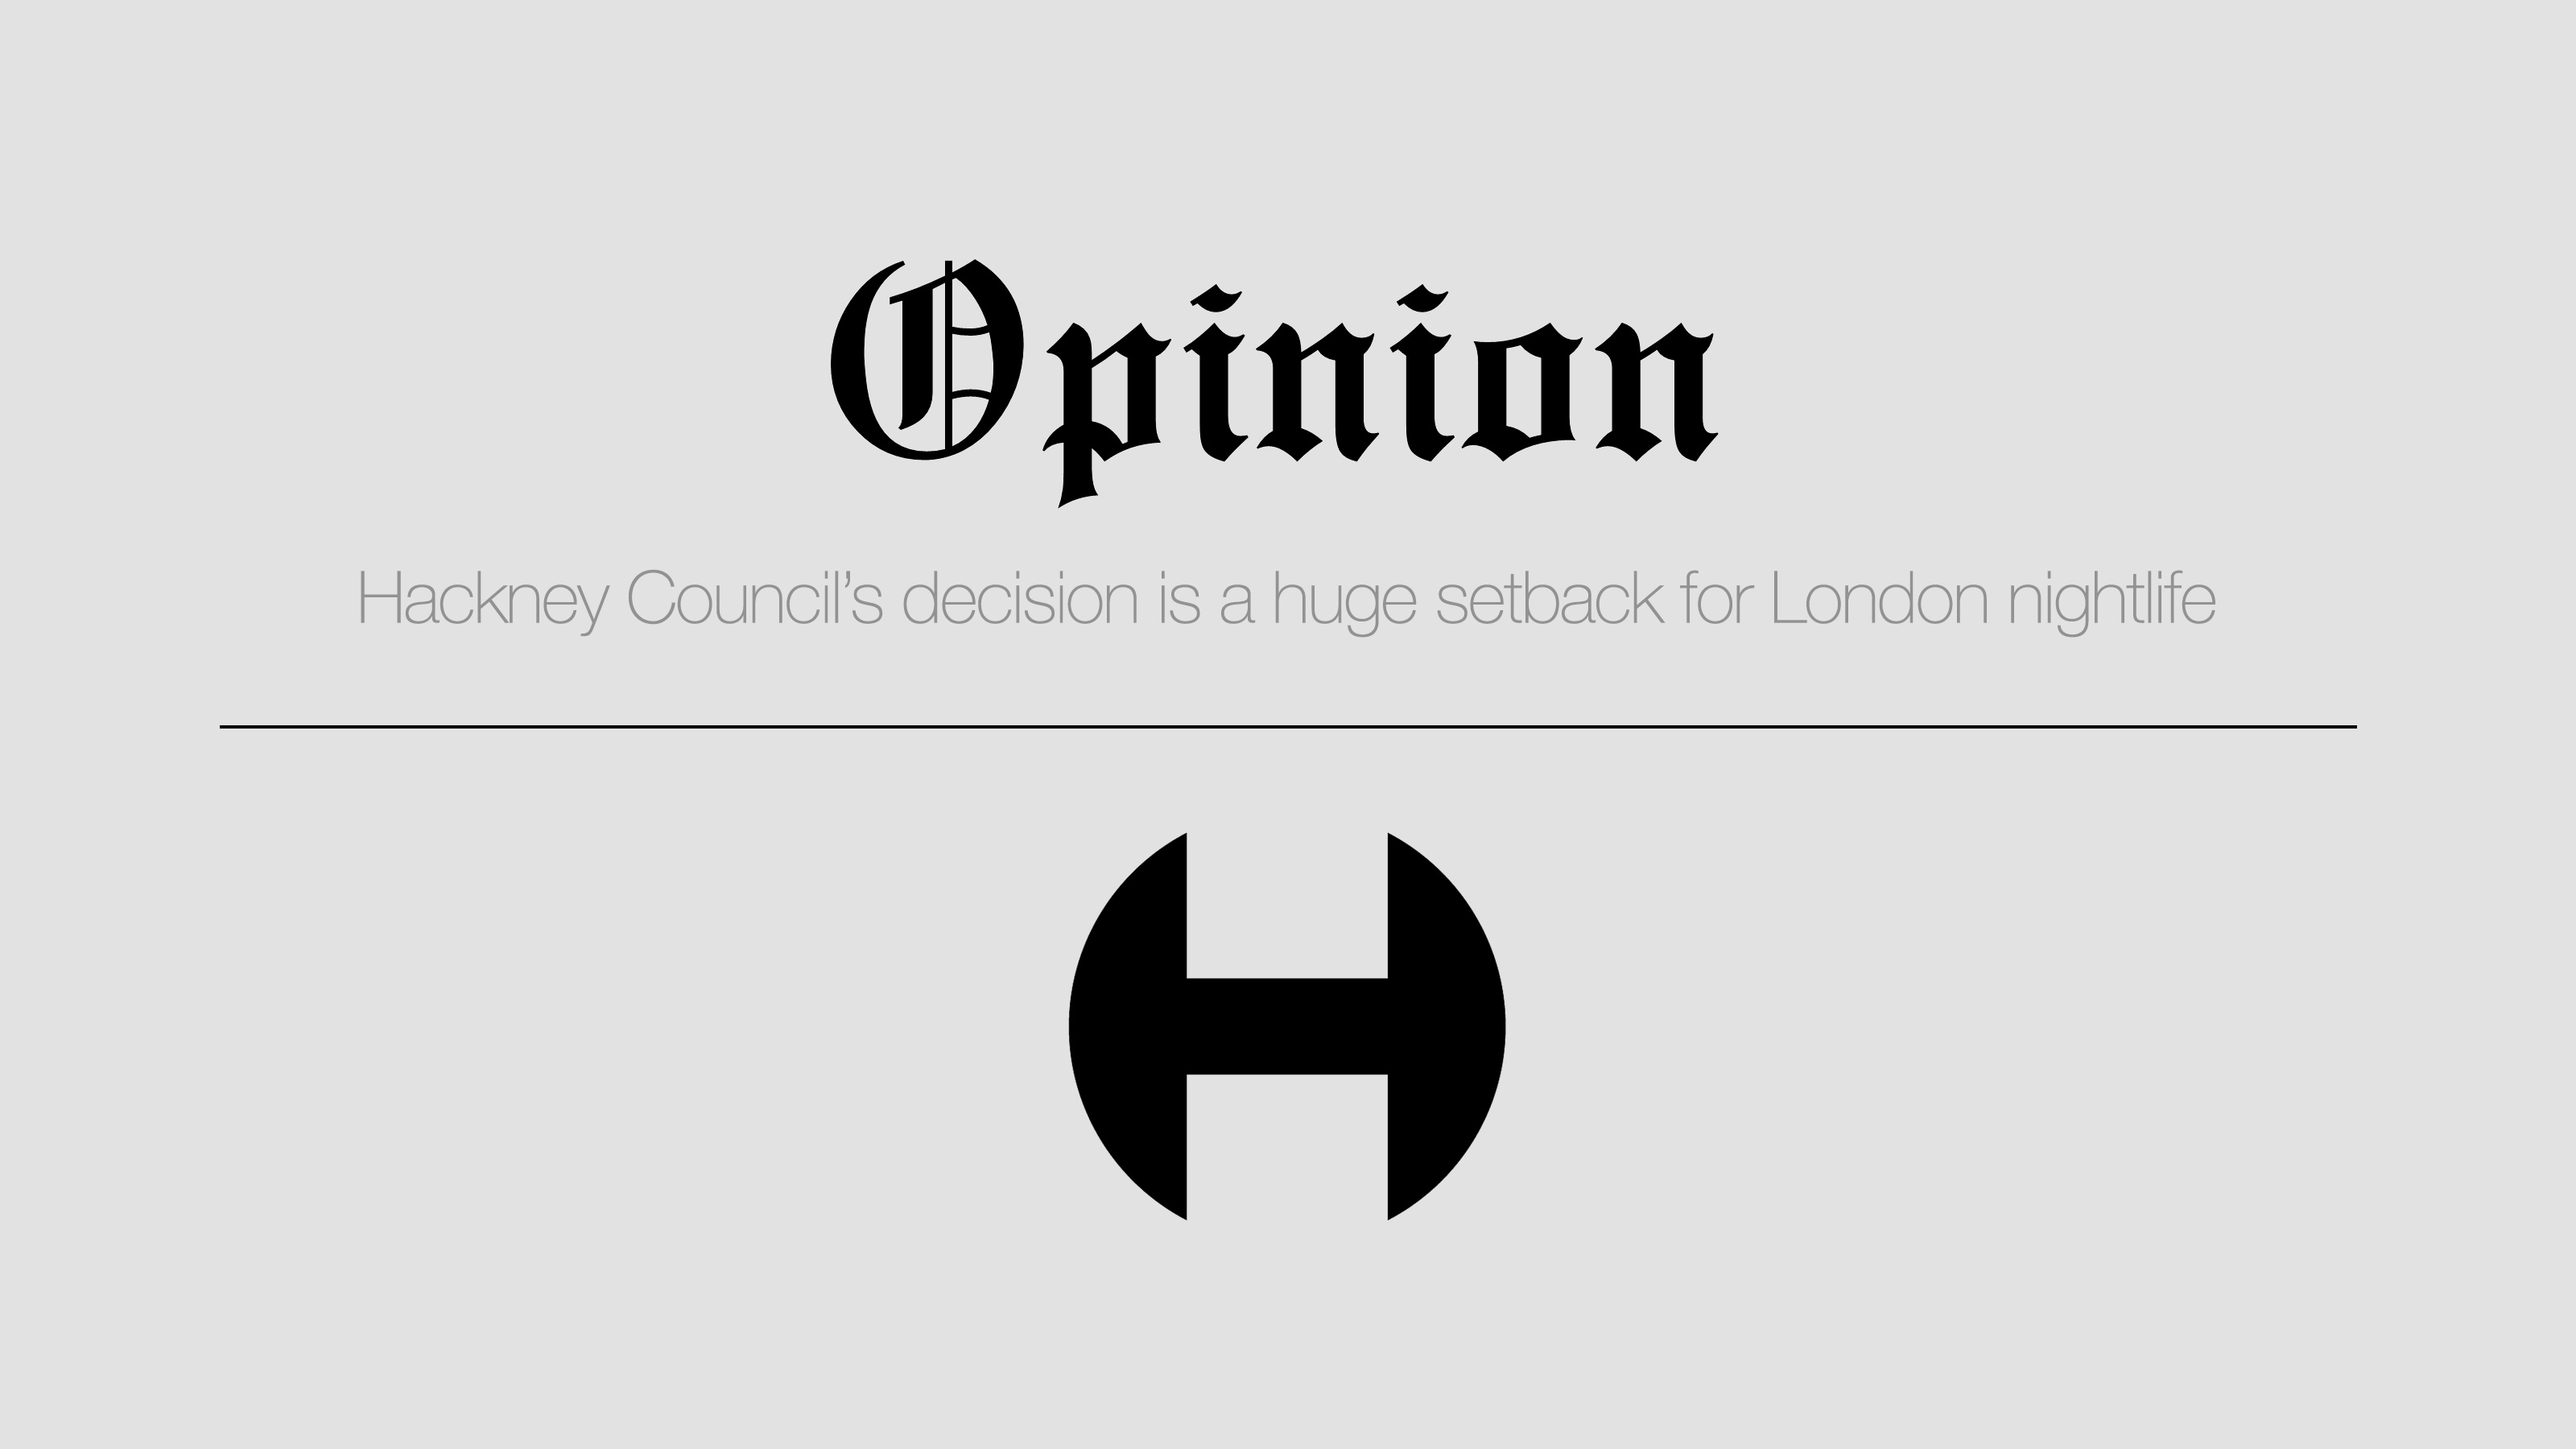 Opinion: Hackney Council's decision is a huge setback for London nightlife